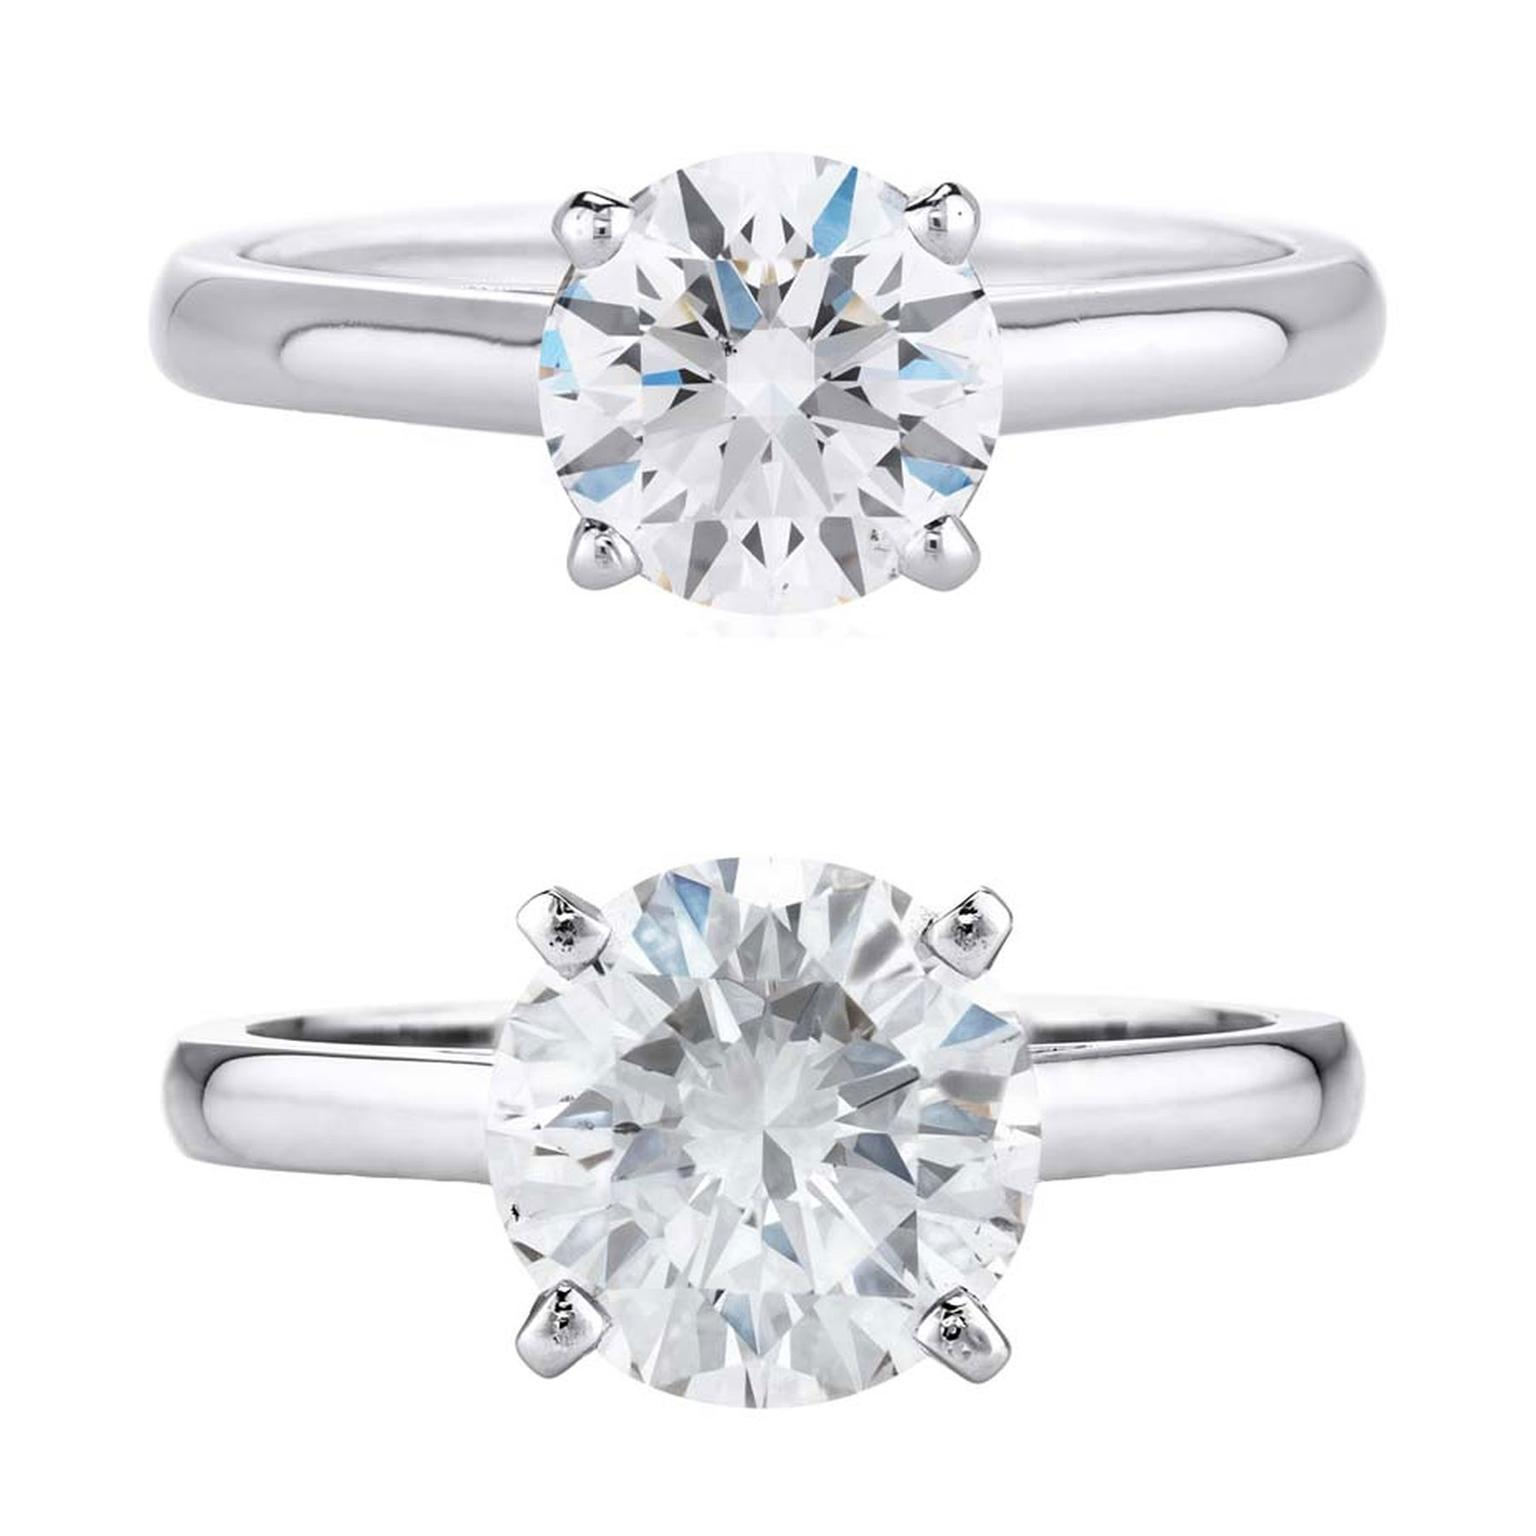 The Visual Difference Between A 1 Carat Diamond Engagement Ring And 2